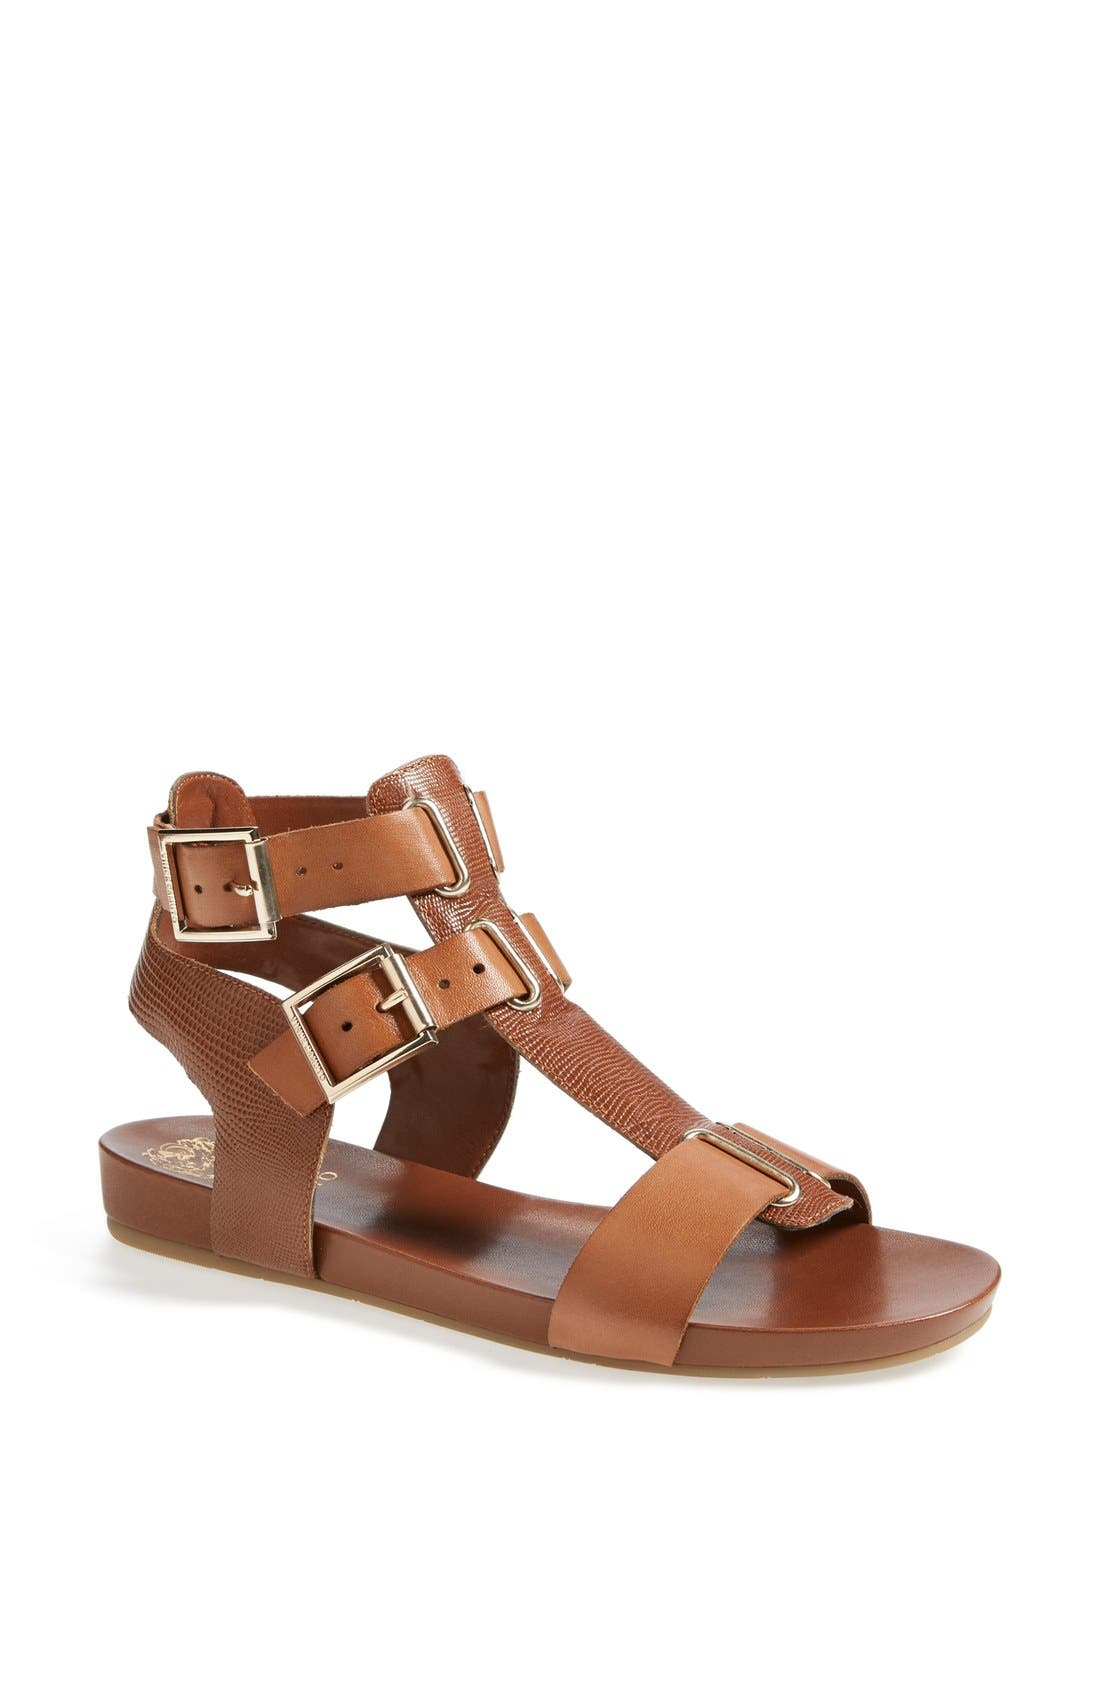 Alternate Image 1 Selected - Vince Camuto 'Pixe' Sandal